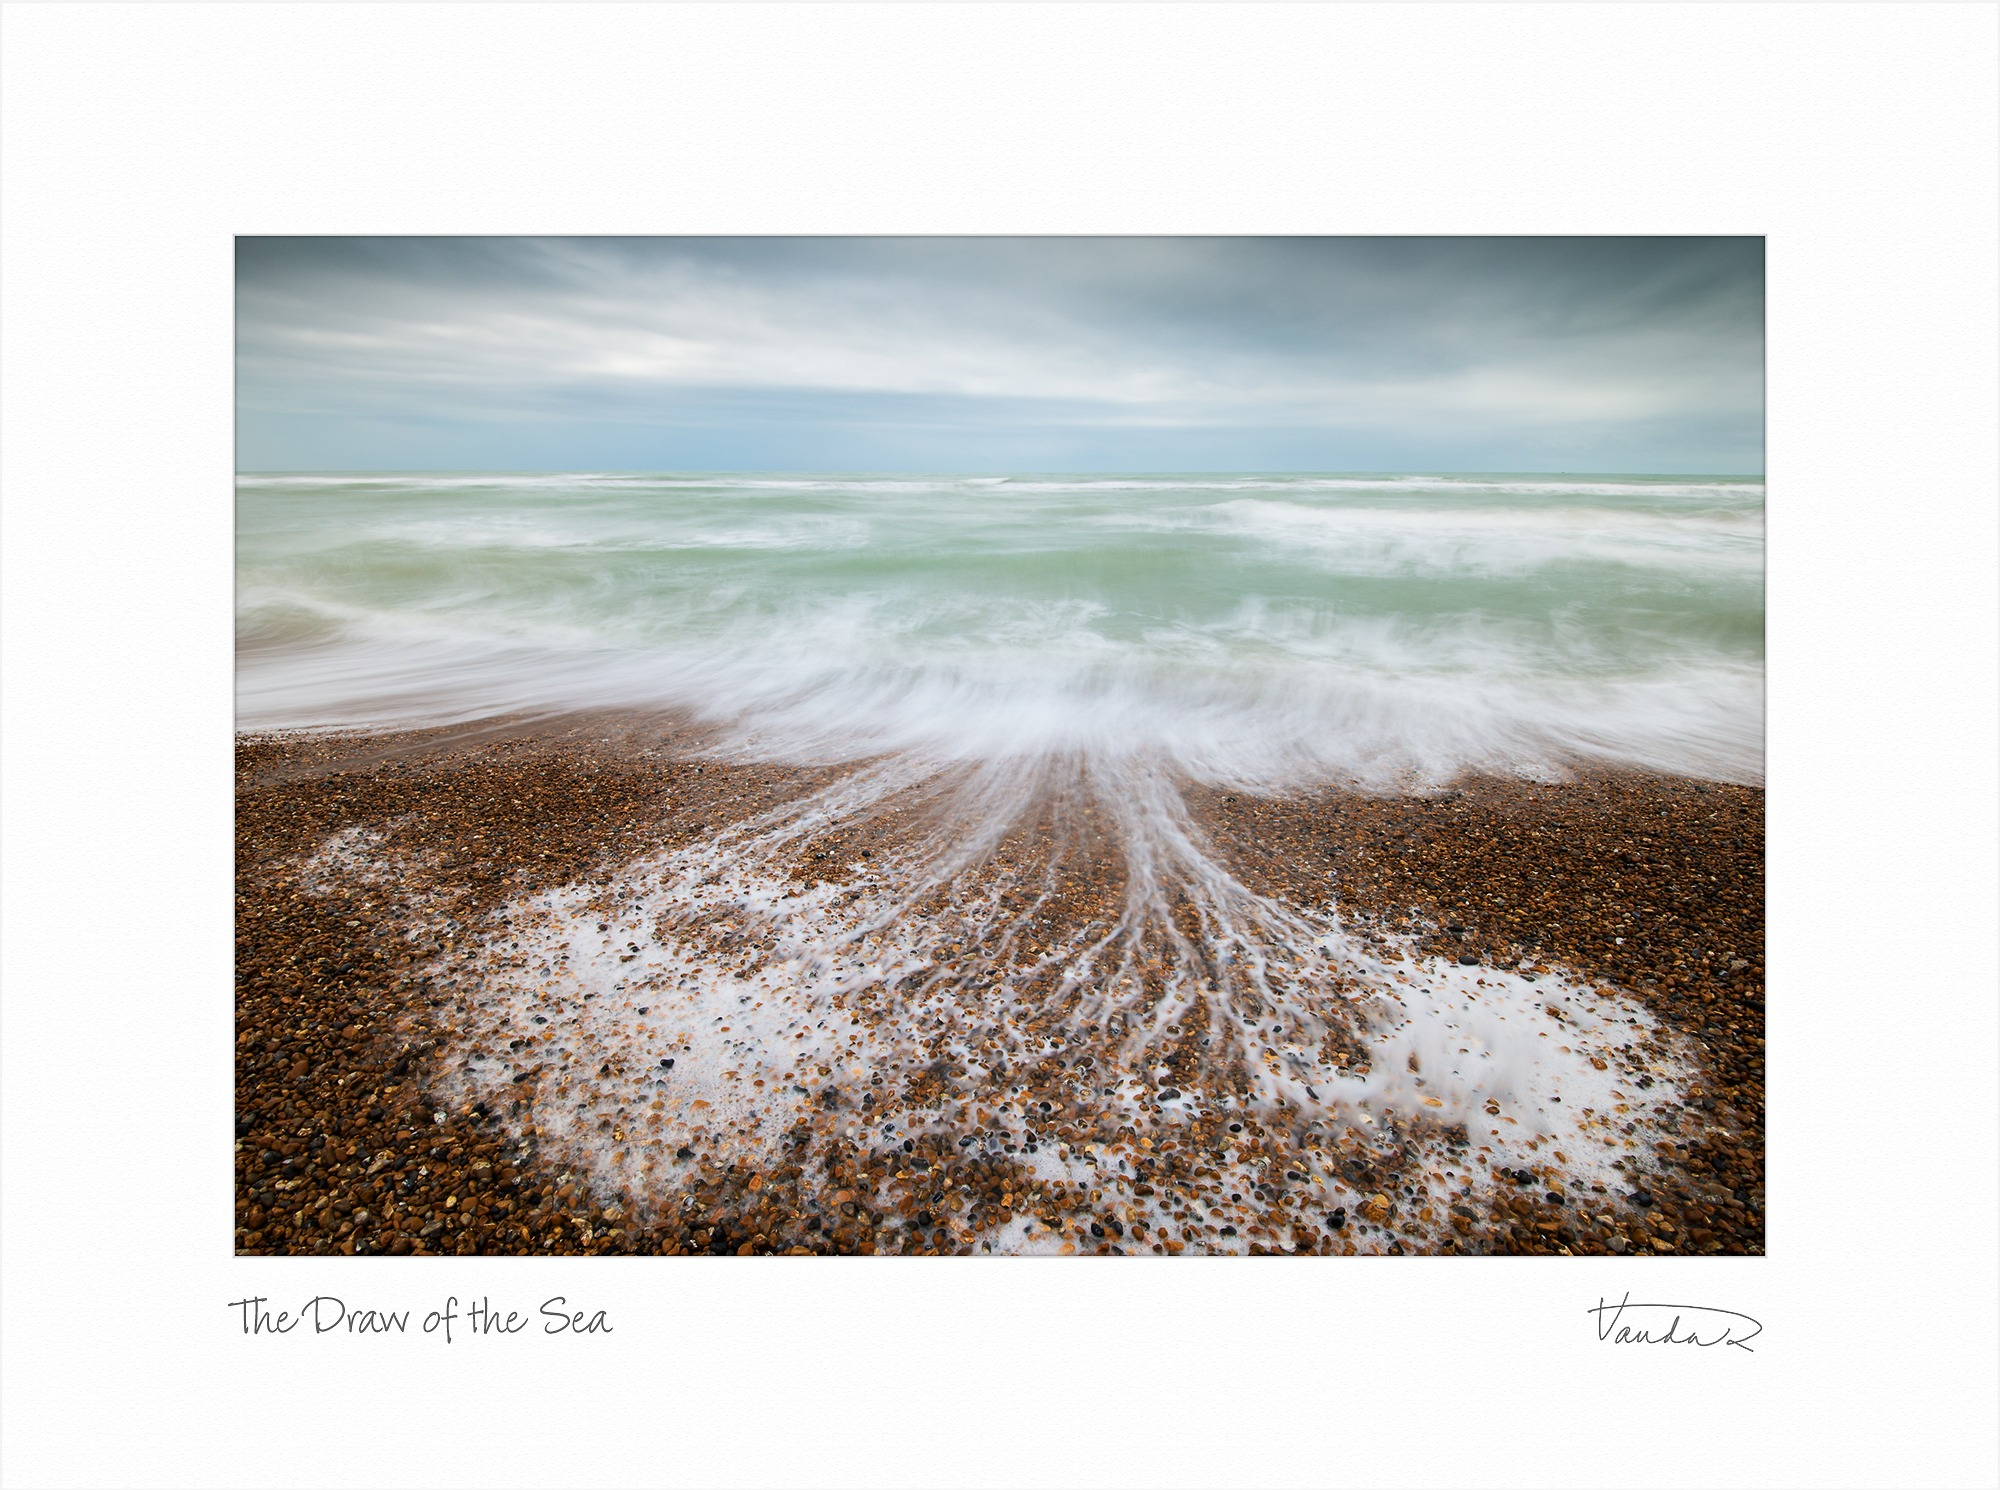 The Draw of the Sea